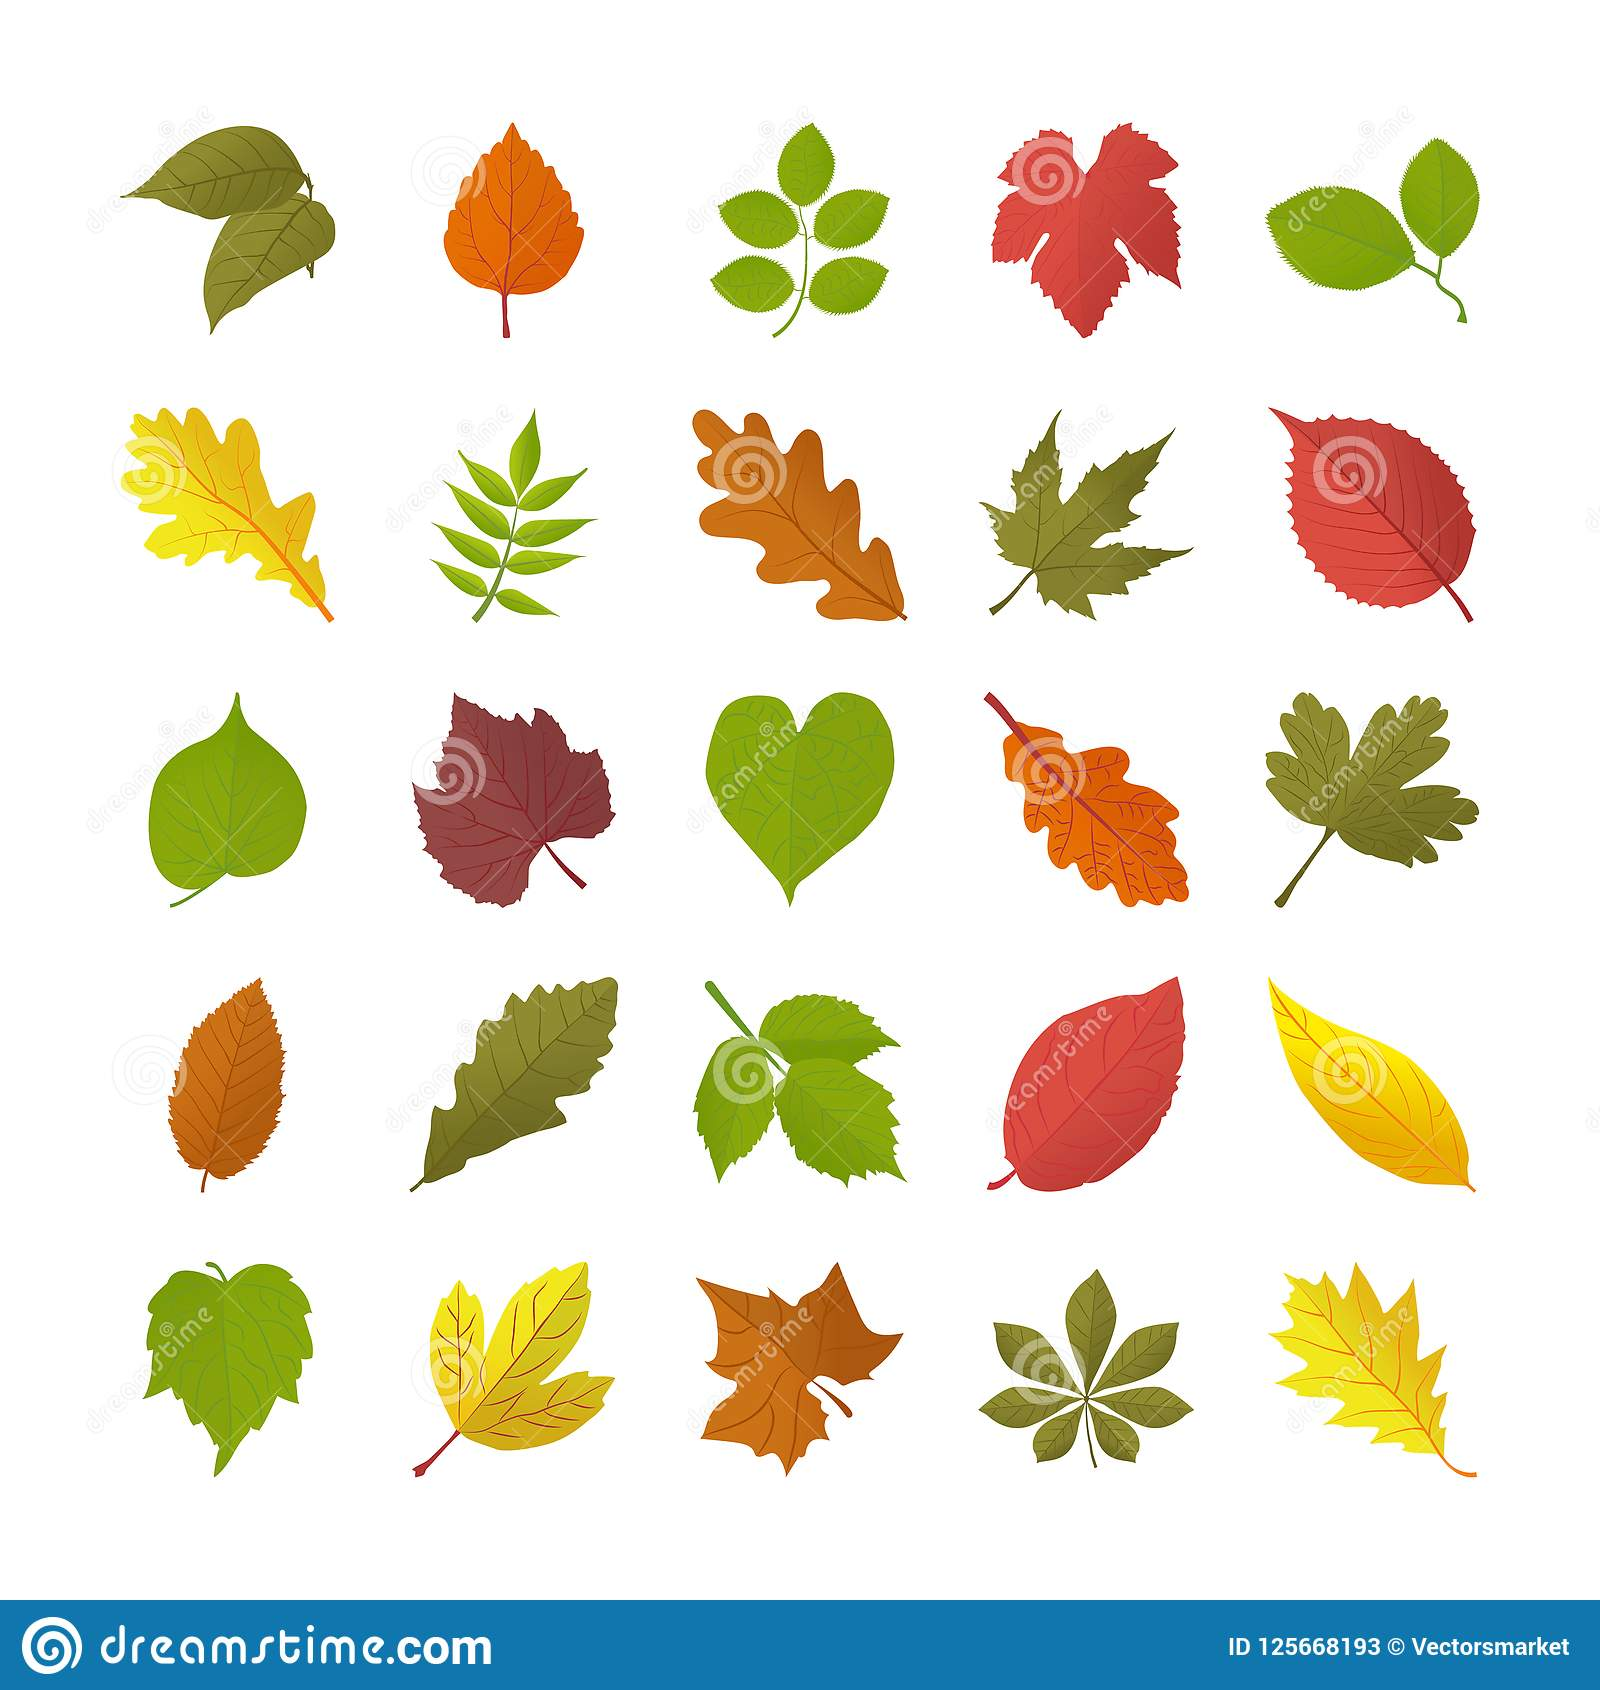 Autumn Leaves Flat Icons